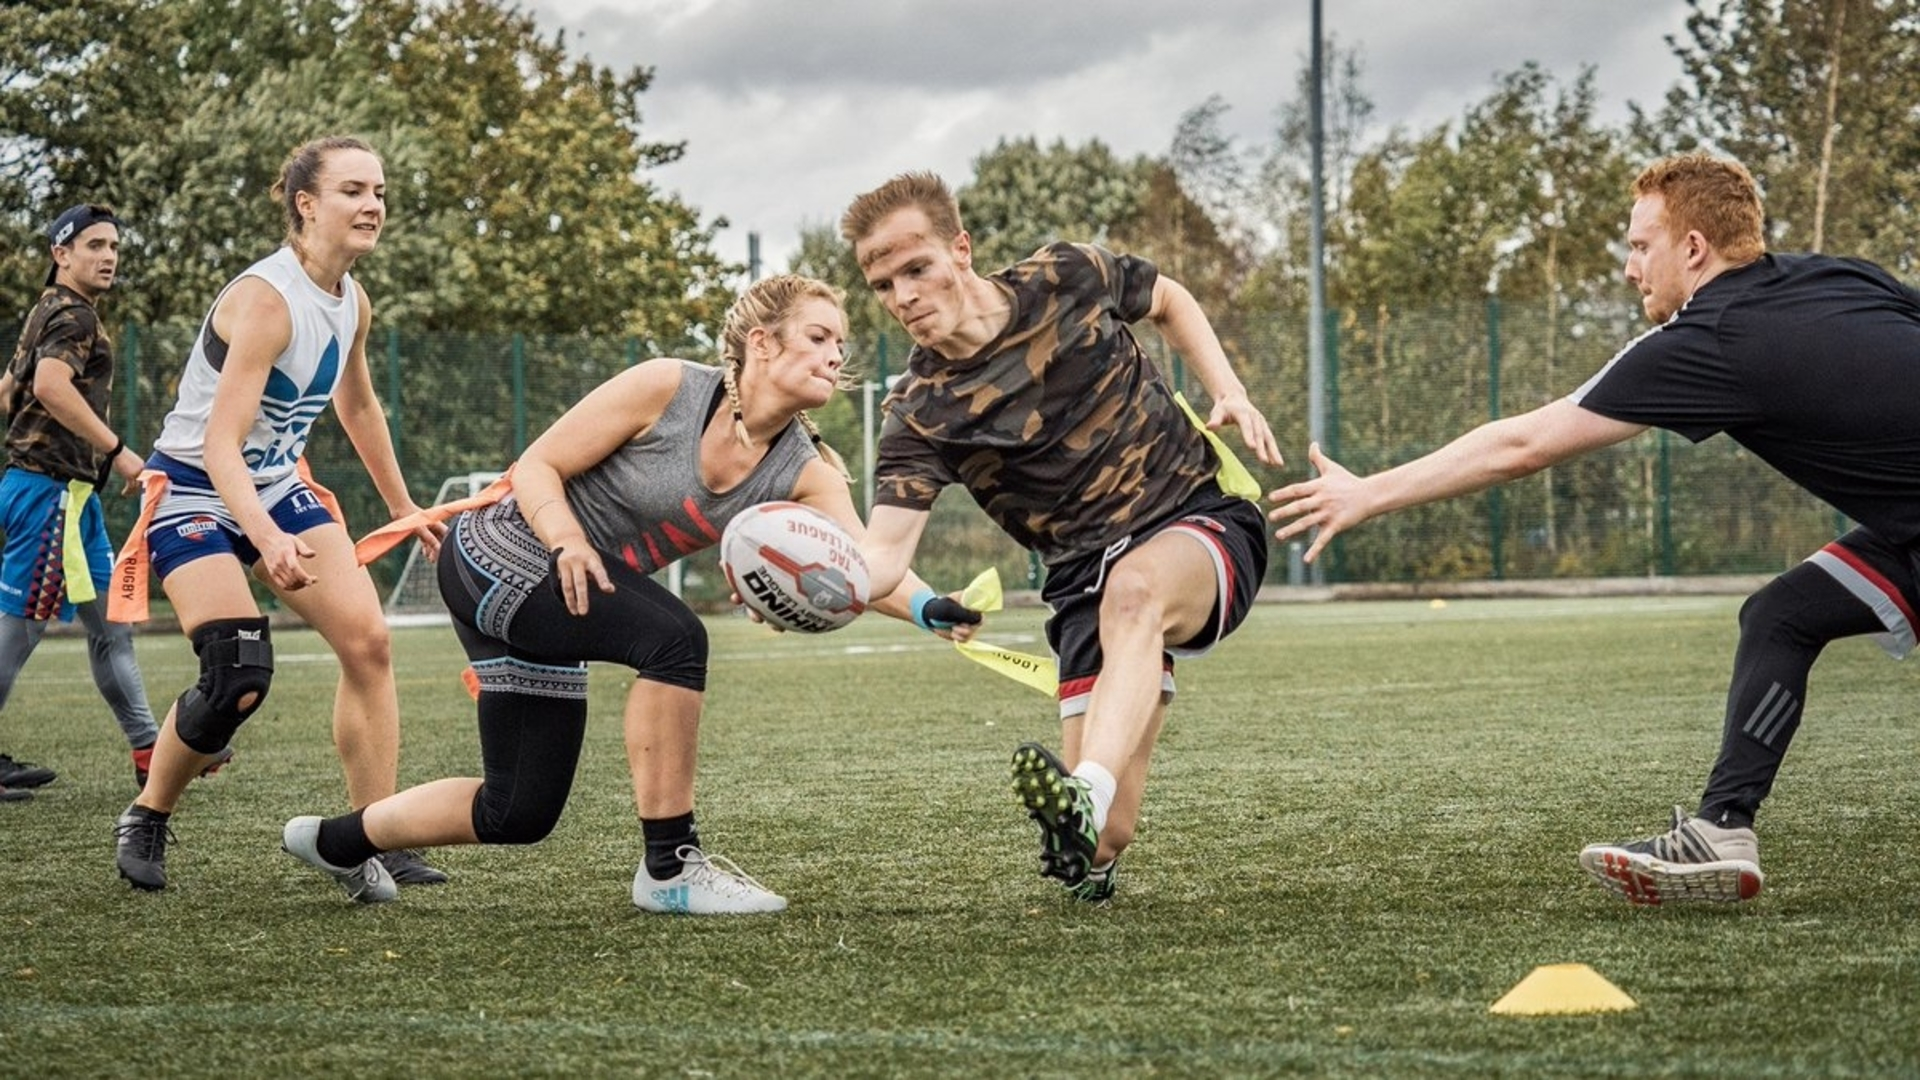 2019 Tag Rugby Festival